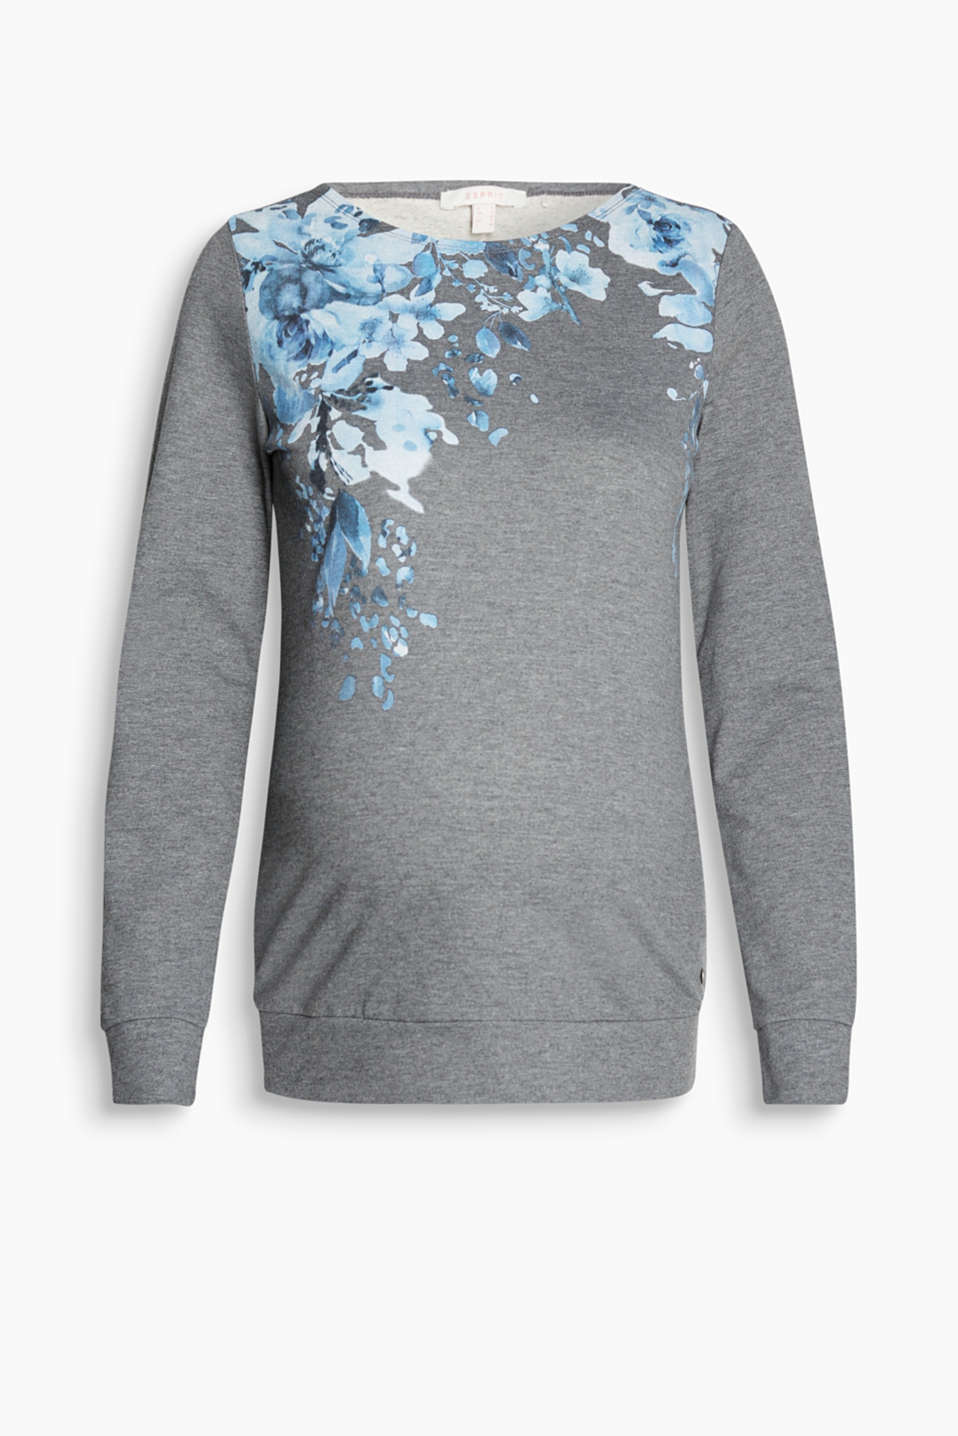 Melange sweatshirt in lightweight blended cotton with a floral print